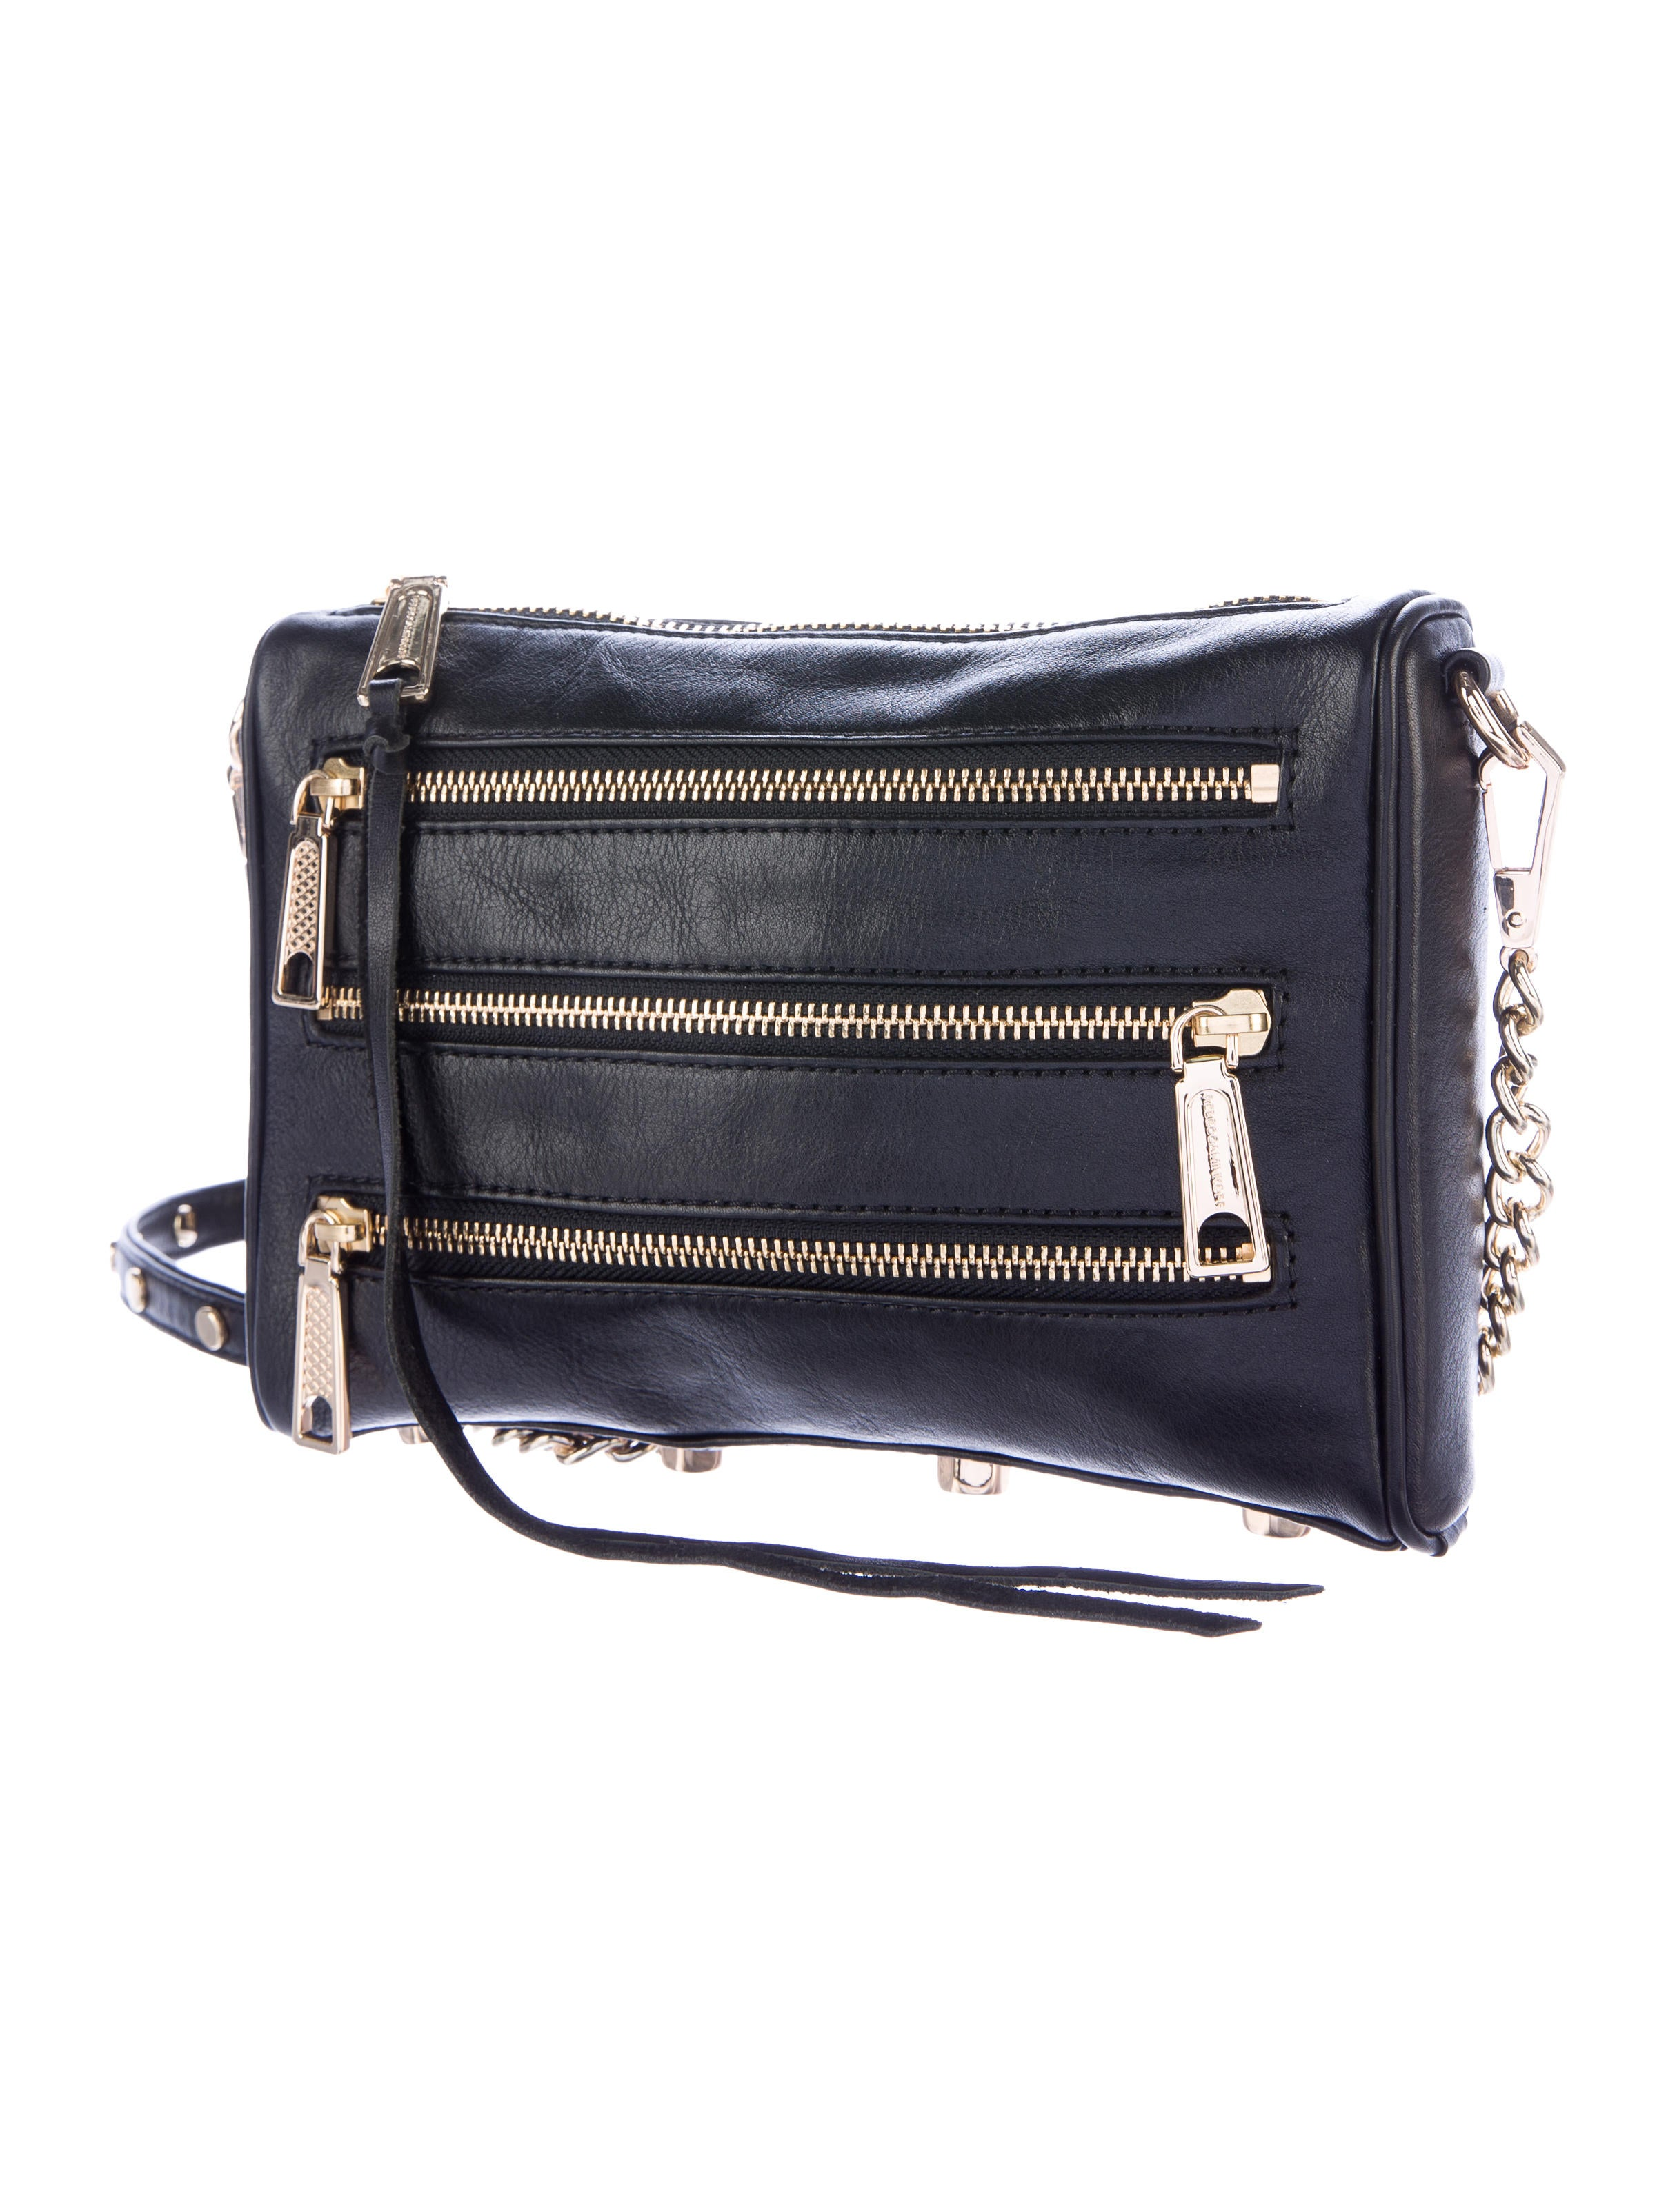 Shop for Baggallini Crossbody Bags at Luggage Pros. Free shipping on orders over $99!